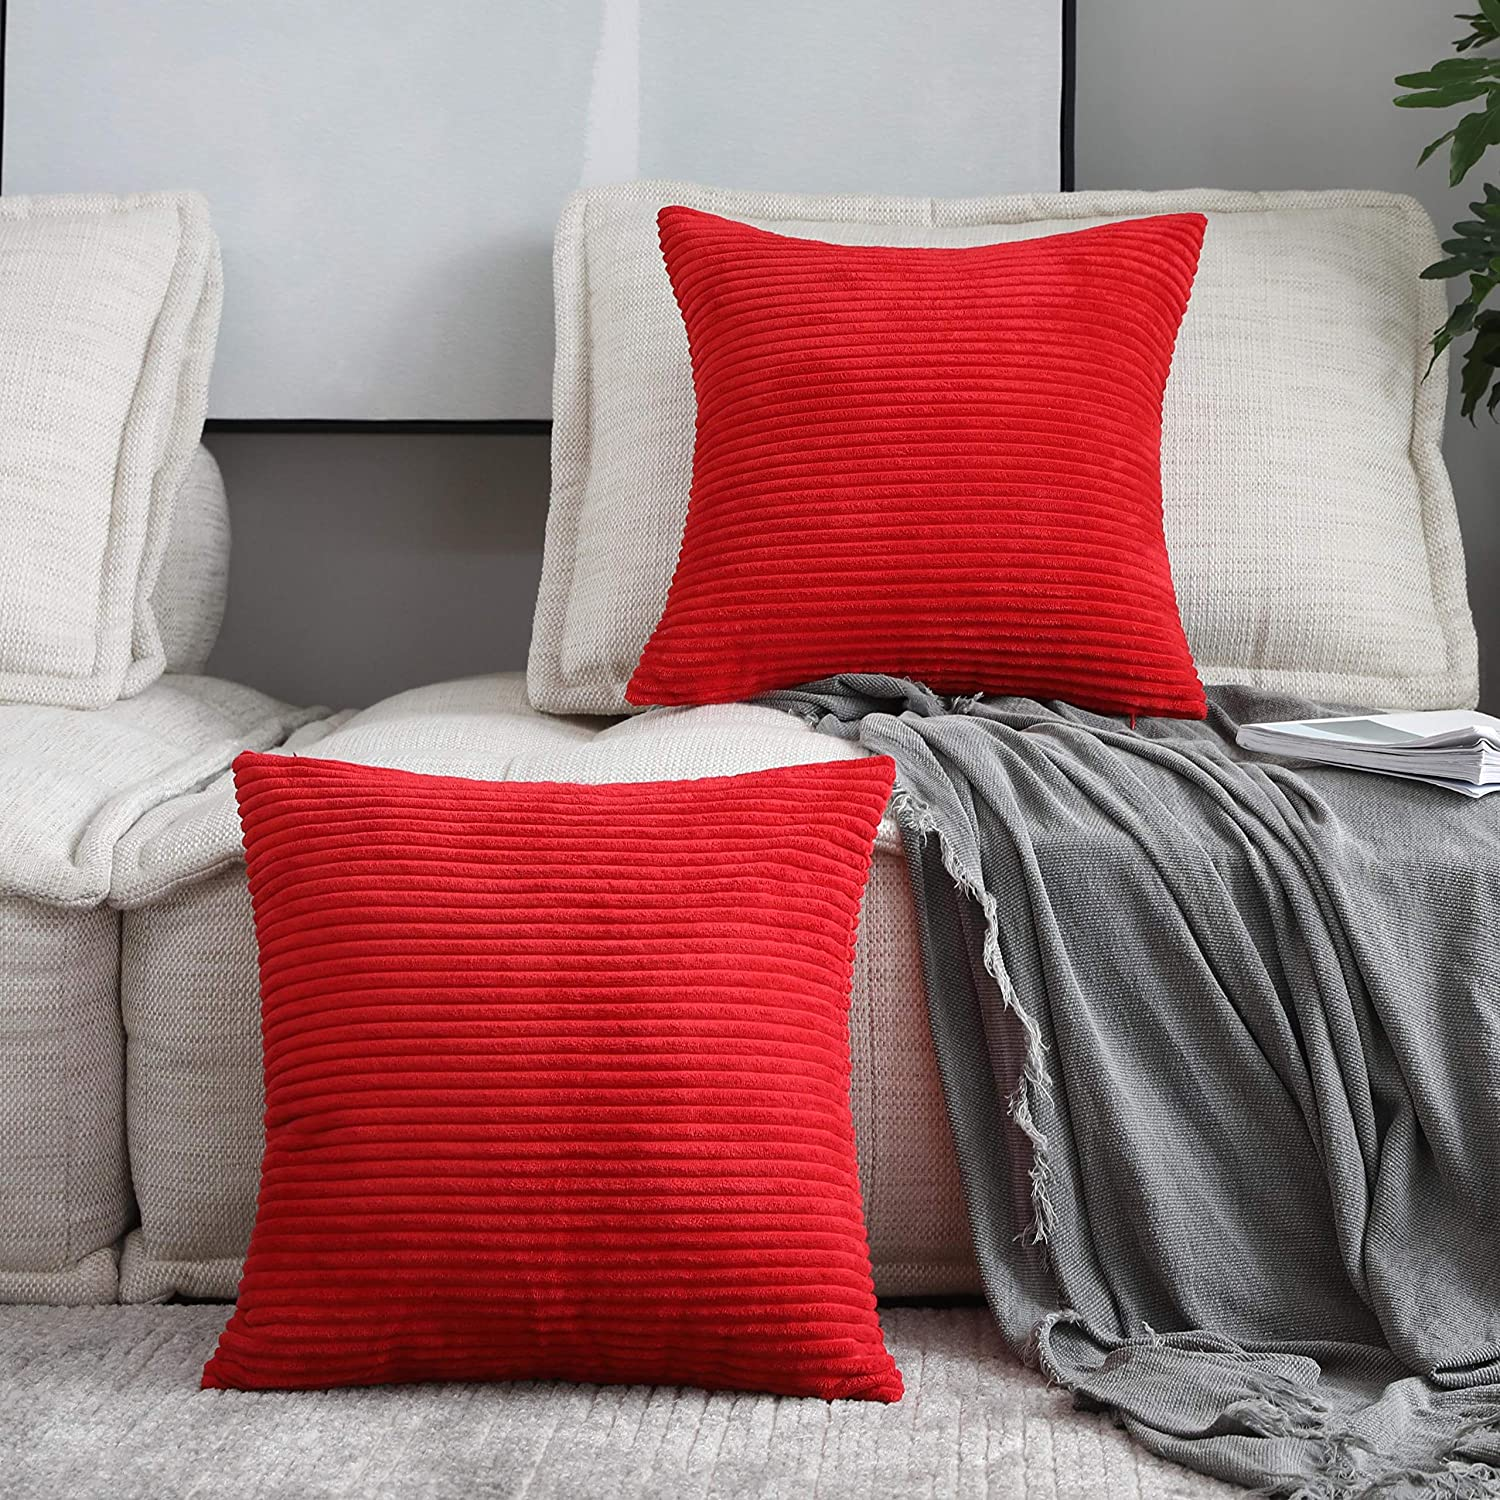 Home Brilliant Red Christmas Throw Decorative unisex Pillows Limited time cheap sale Co